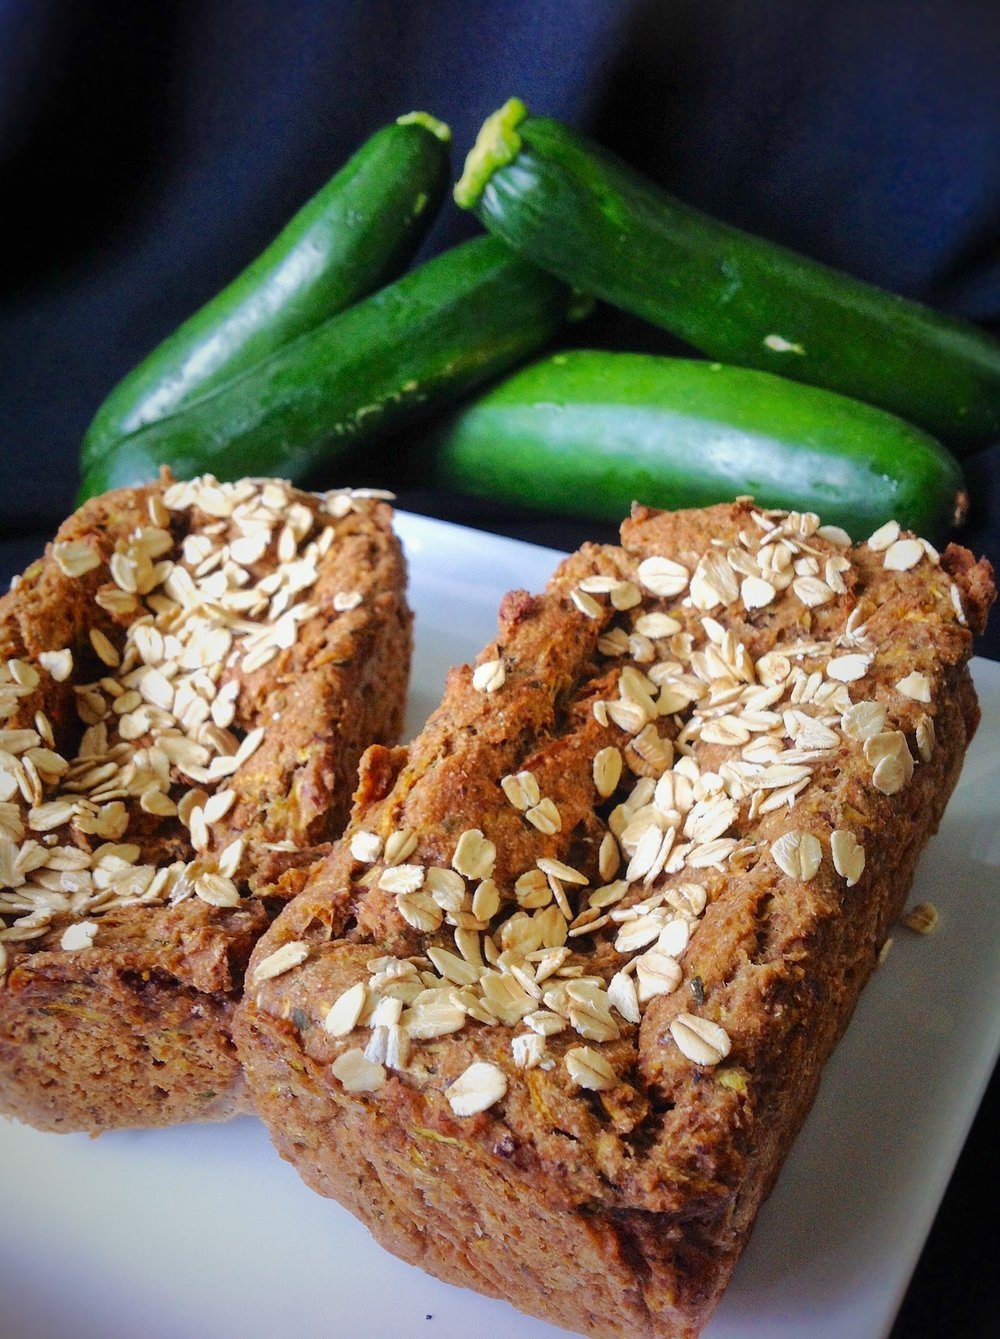 Zucchini Oat Bread - Healthy, Whole Grain, Oil-Free, Plant-Based, Vegan, No Sugar Added, Baking Recipe